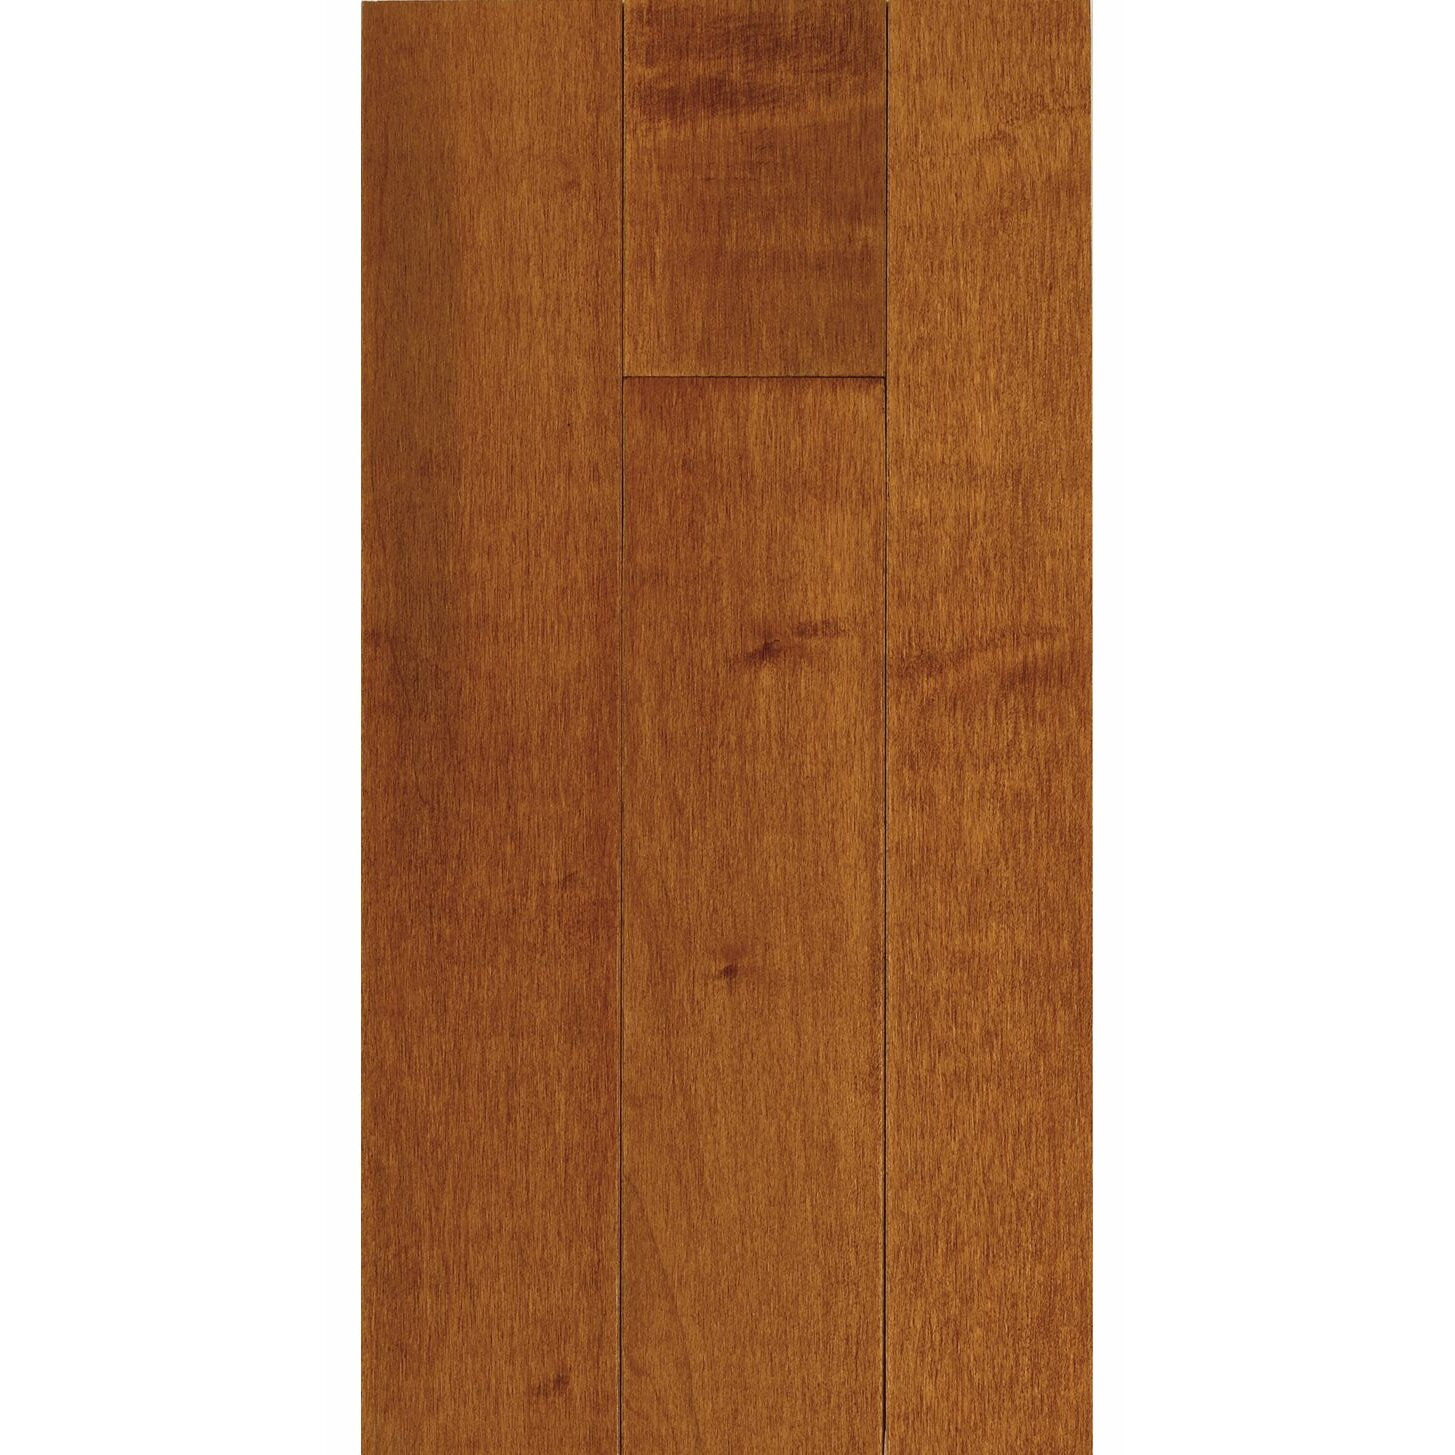 "2-1/4"" Solid Maple Hardwood Flooring In Cinnamon"